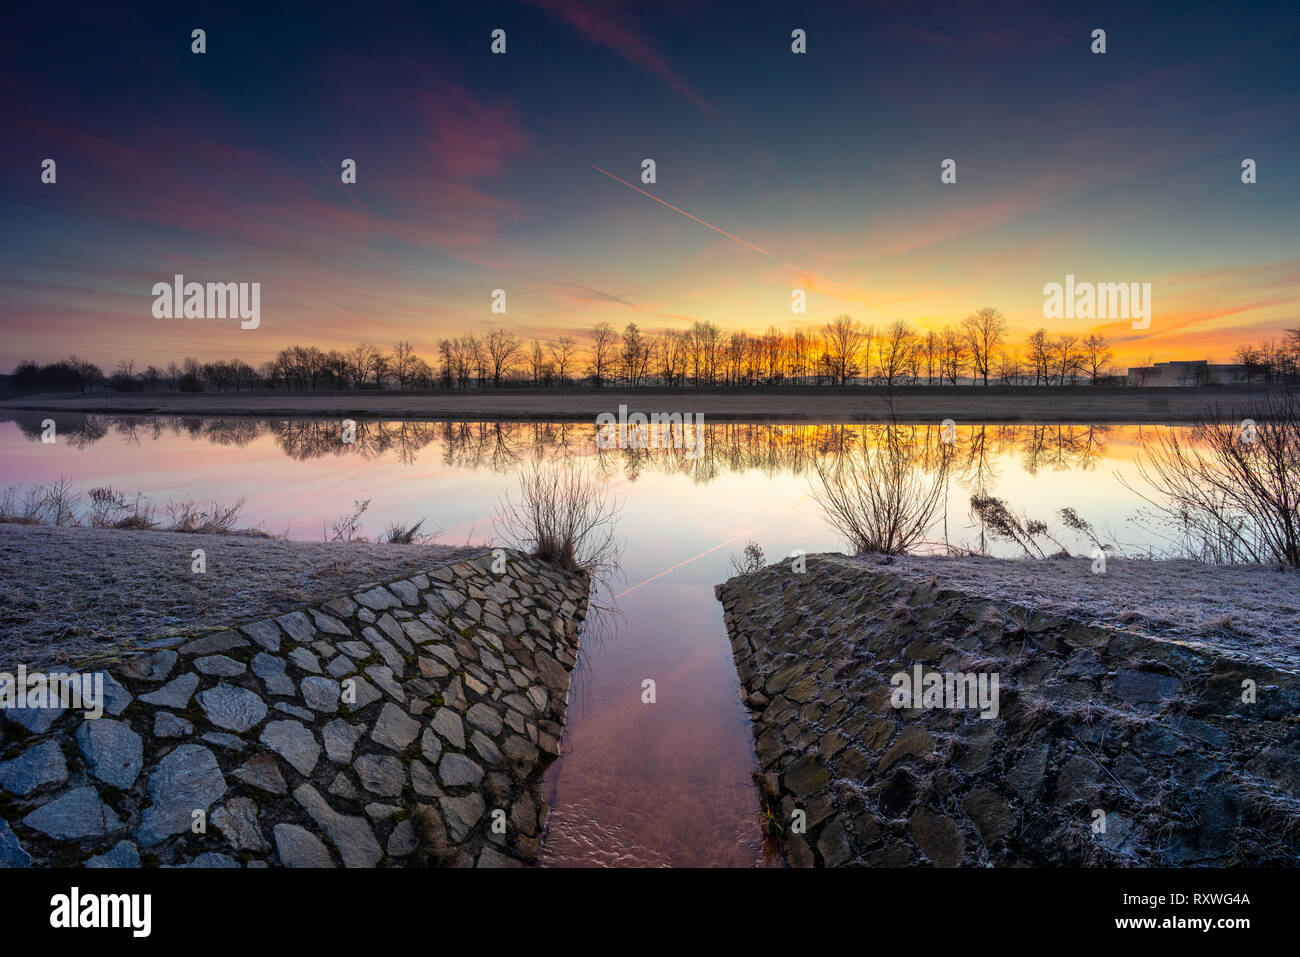 Frozen morning by the river under the sunrise heaven. Stock Photo